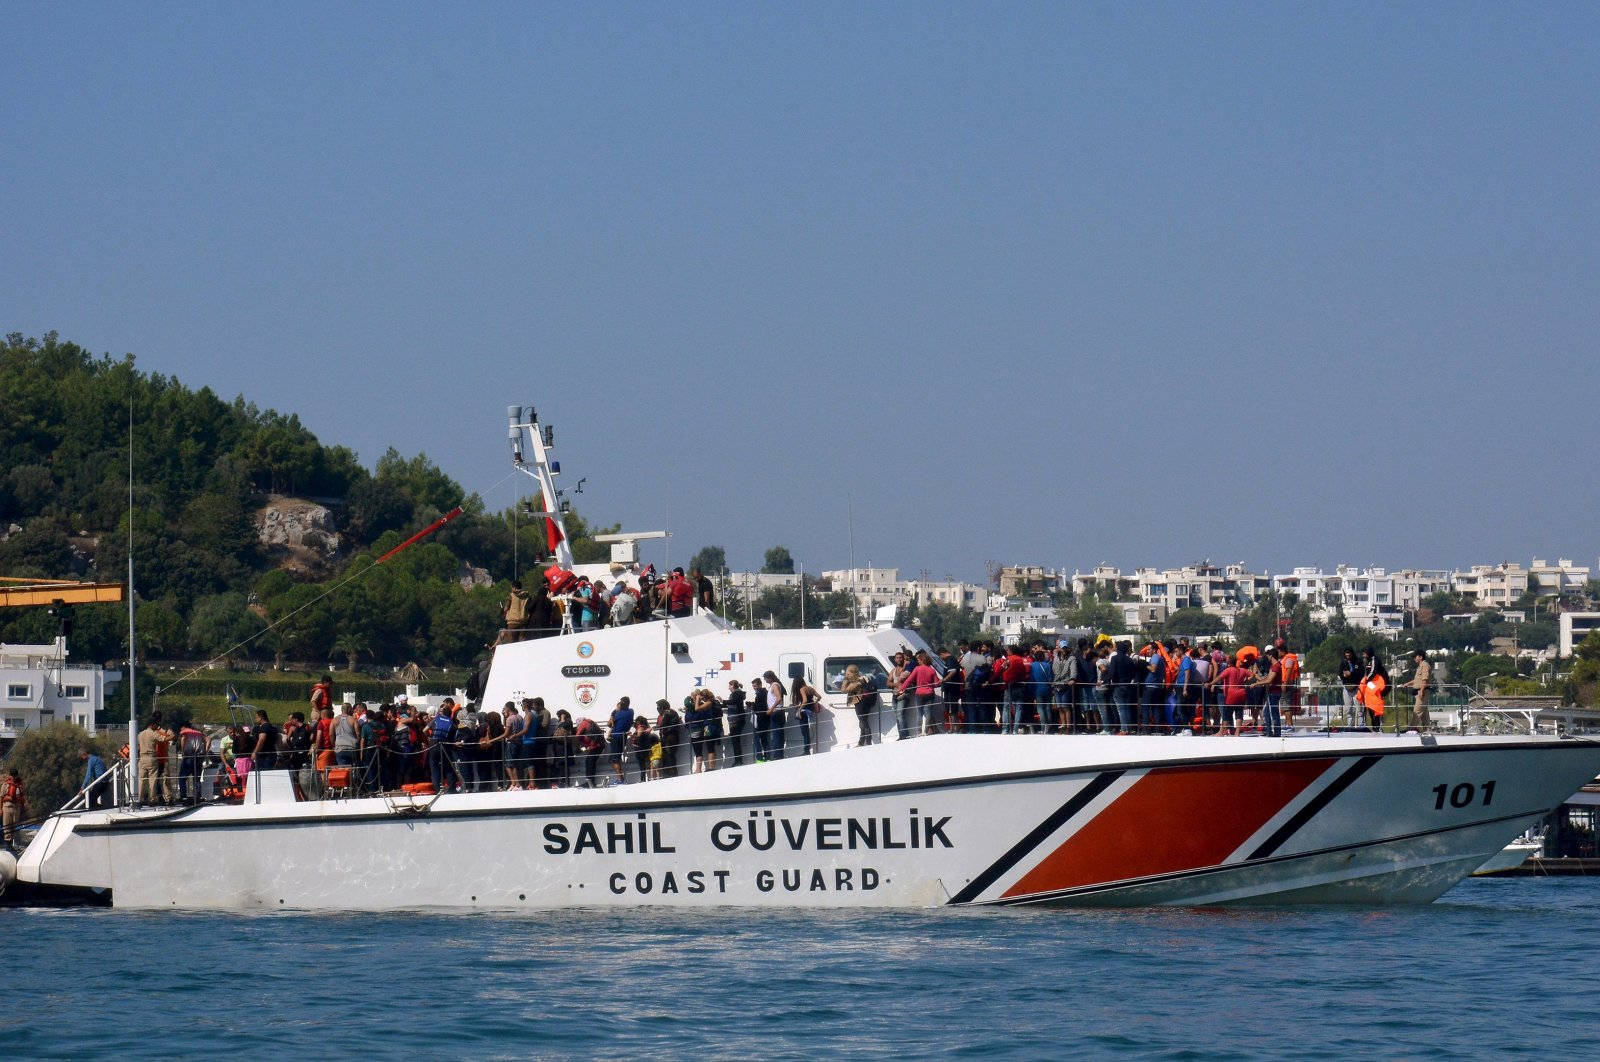 Migrants rescued from a capsized boat wait to disembark from a Coast Guard ship in the resort town of Bodrum, in Muğla province Sept. 15, 2015. (Reuters File Photo)